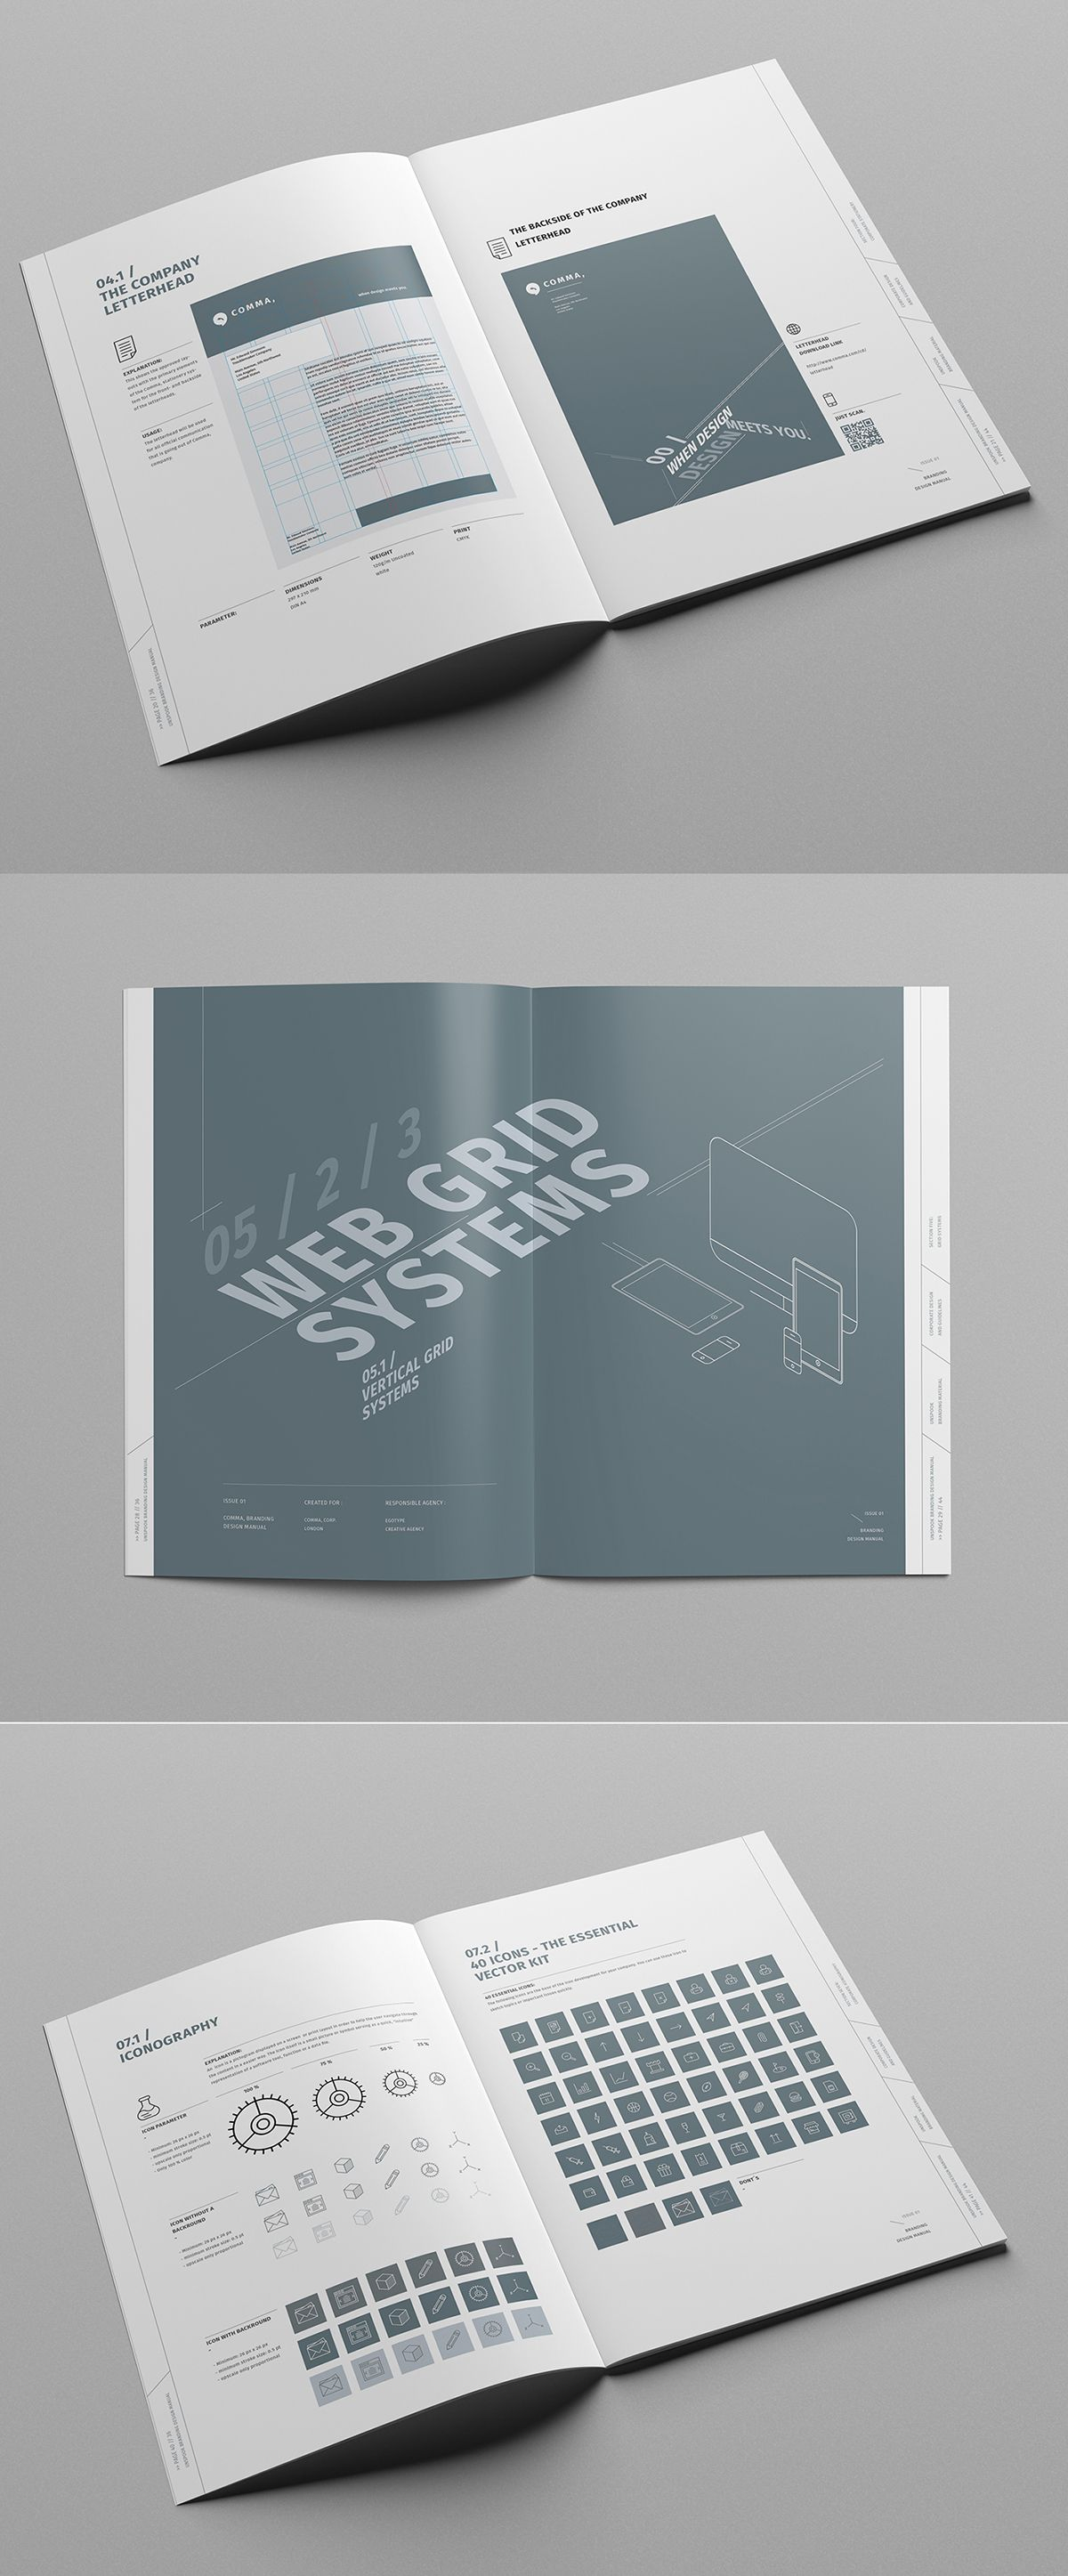 Brand Manual on Behance | Brand Guideline | Pinterest | Brand manual ...